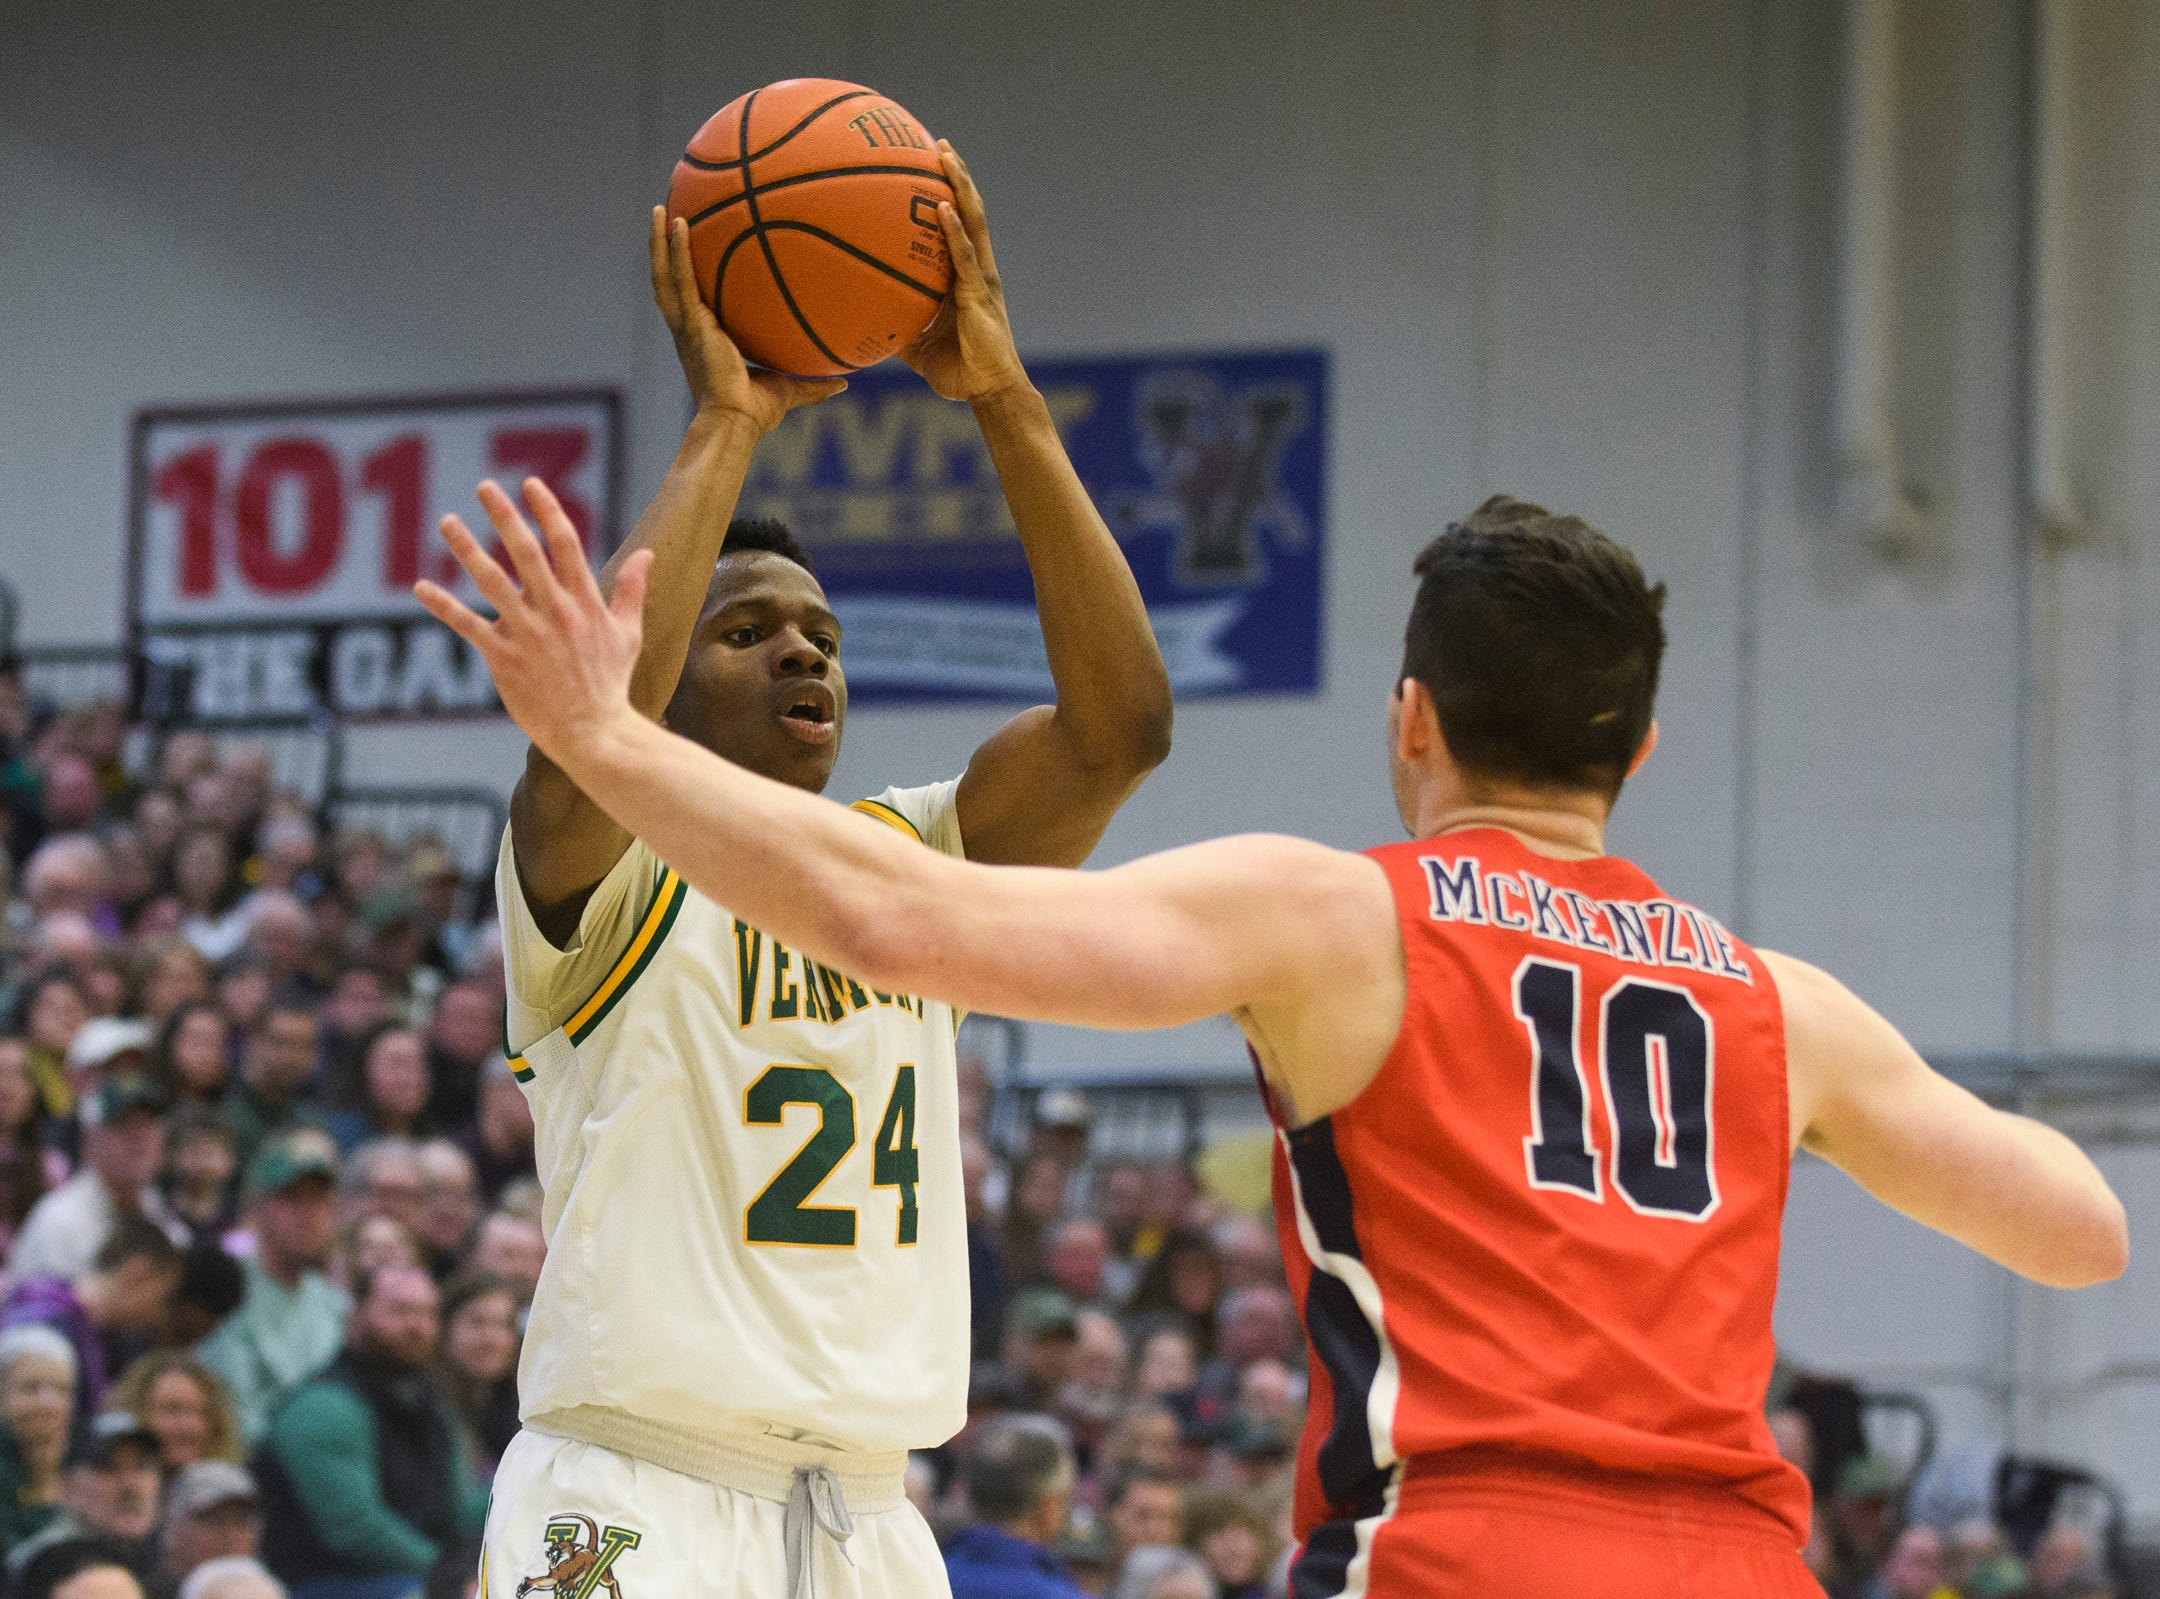 Vermont guard Ben Shungu (24) looks to pass the ball during the men's basketball game between the Stony Brook Seawolves and the Vermont Catamounts at Patrick Gym on Saturday night March 2, 2019 in Burlington, Vermont.